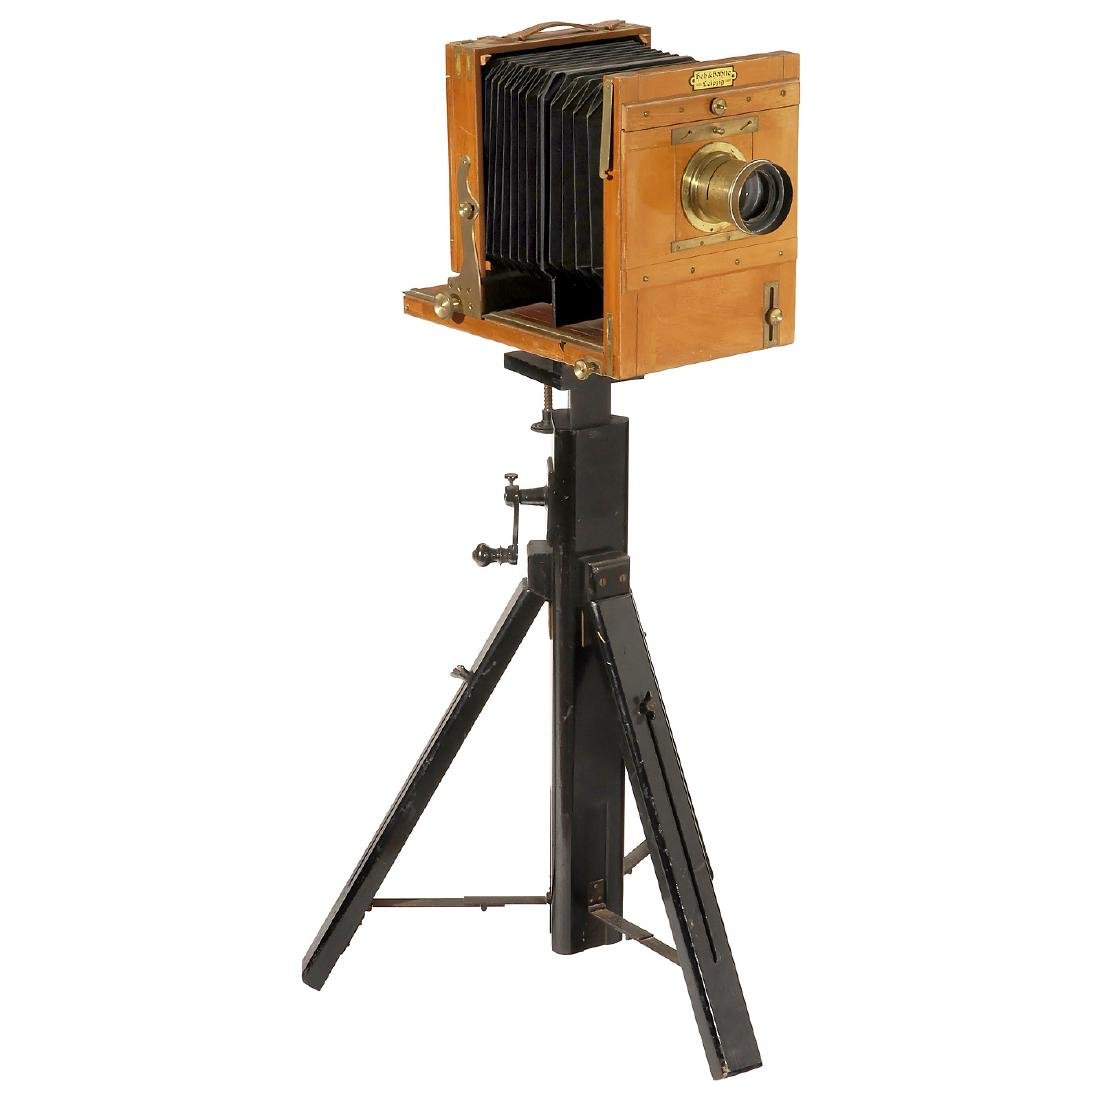 Union Field Camera, Mod. IV, 1926